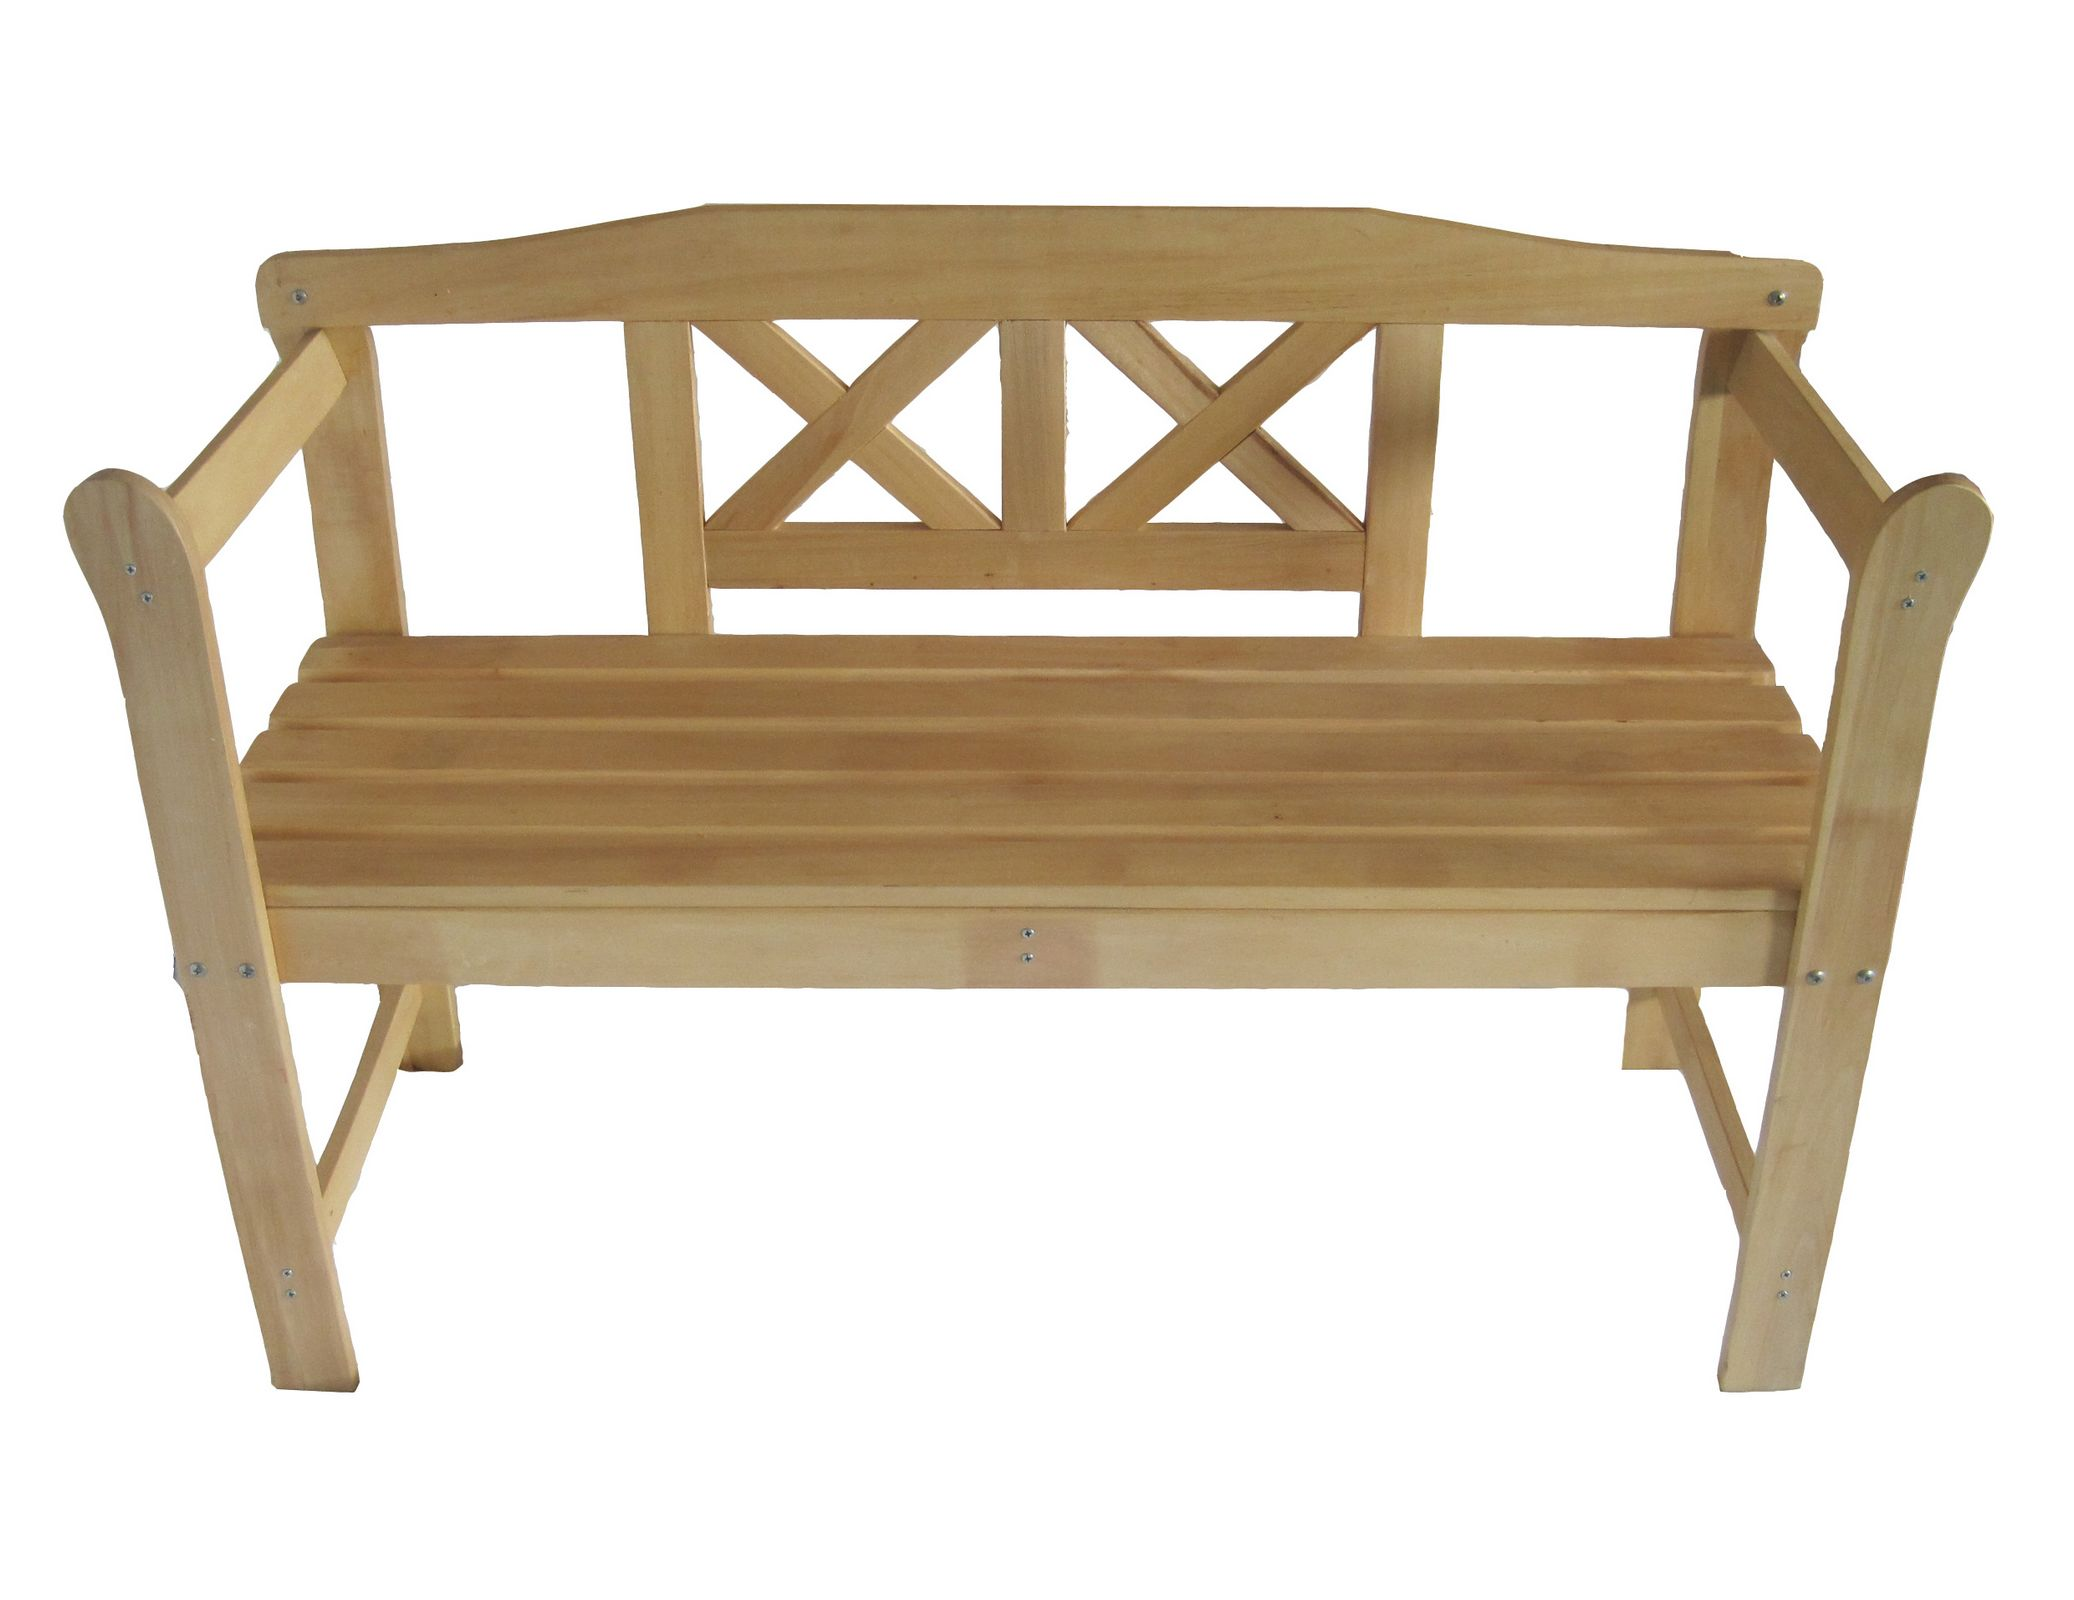 Image Gallery Outdoor Wood Park Bench